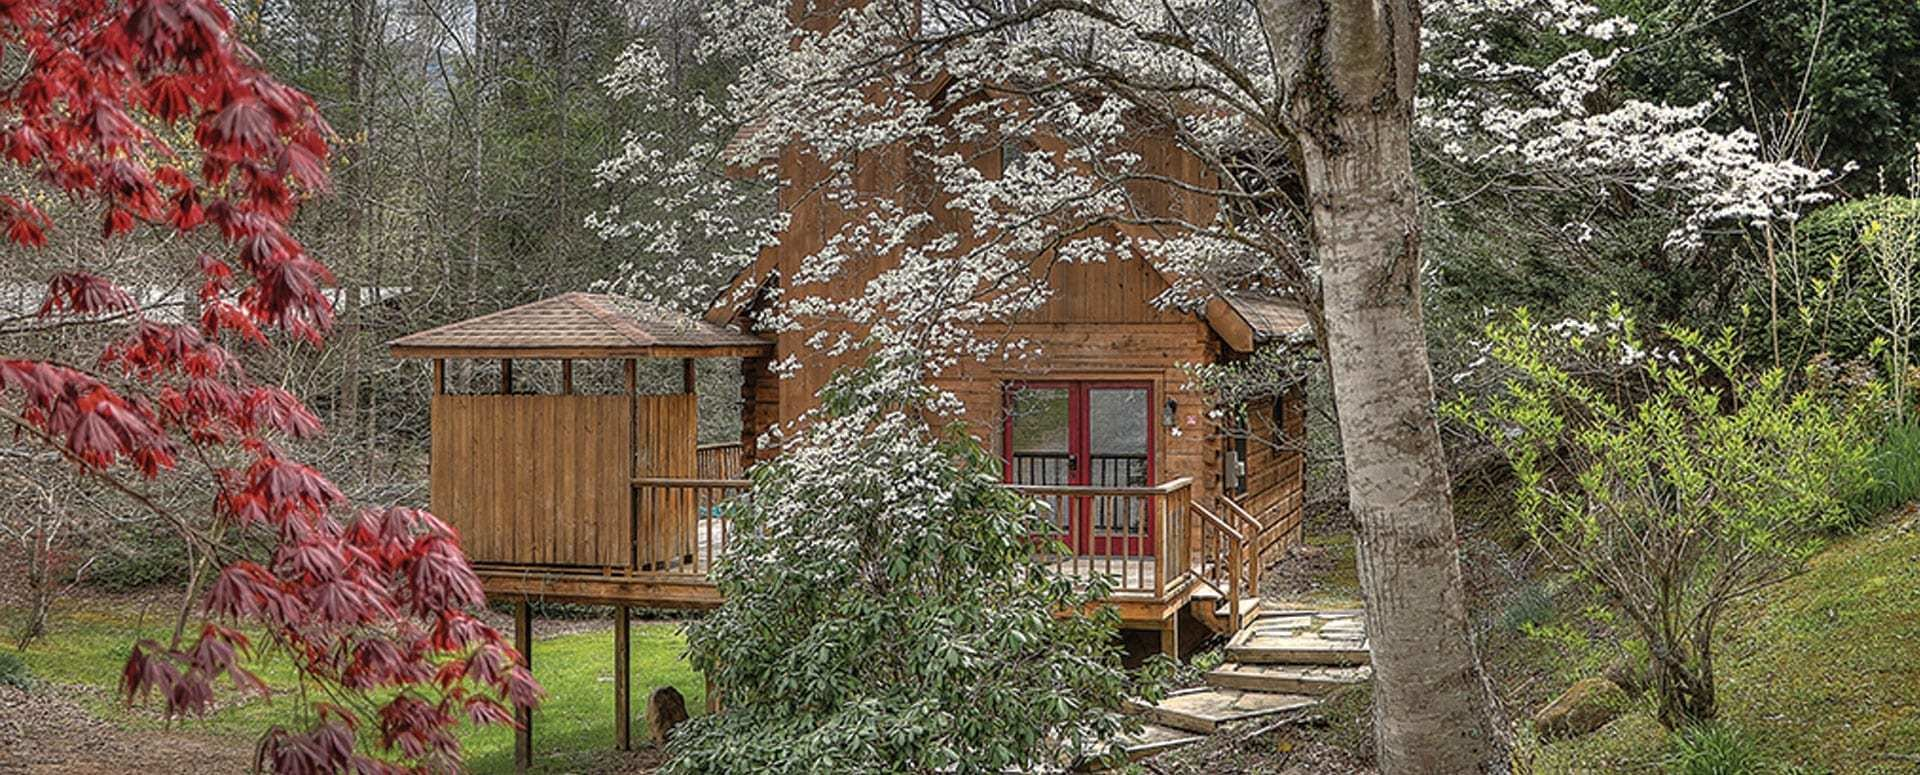 Best 1 Bedroom Cabins In Gatlinburg Tn Gatlinburg Cabin Rentals With Pictures